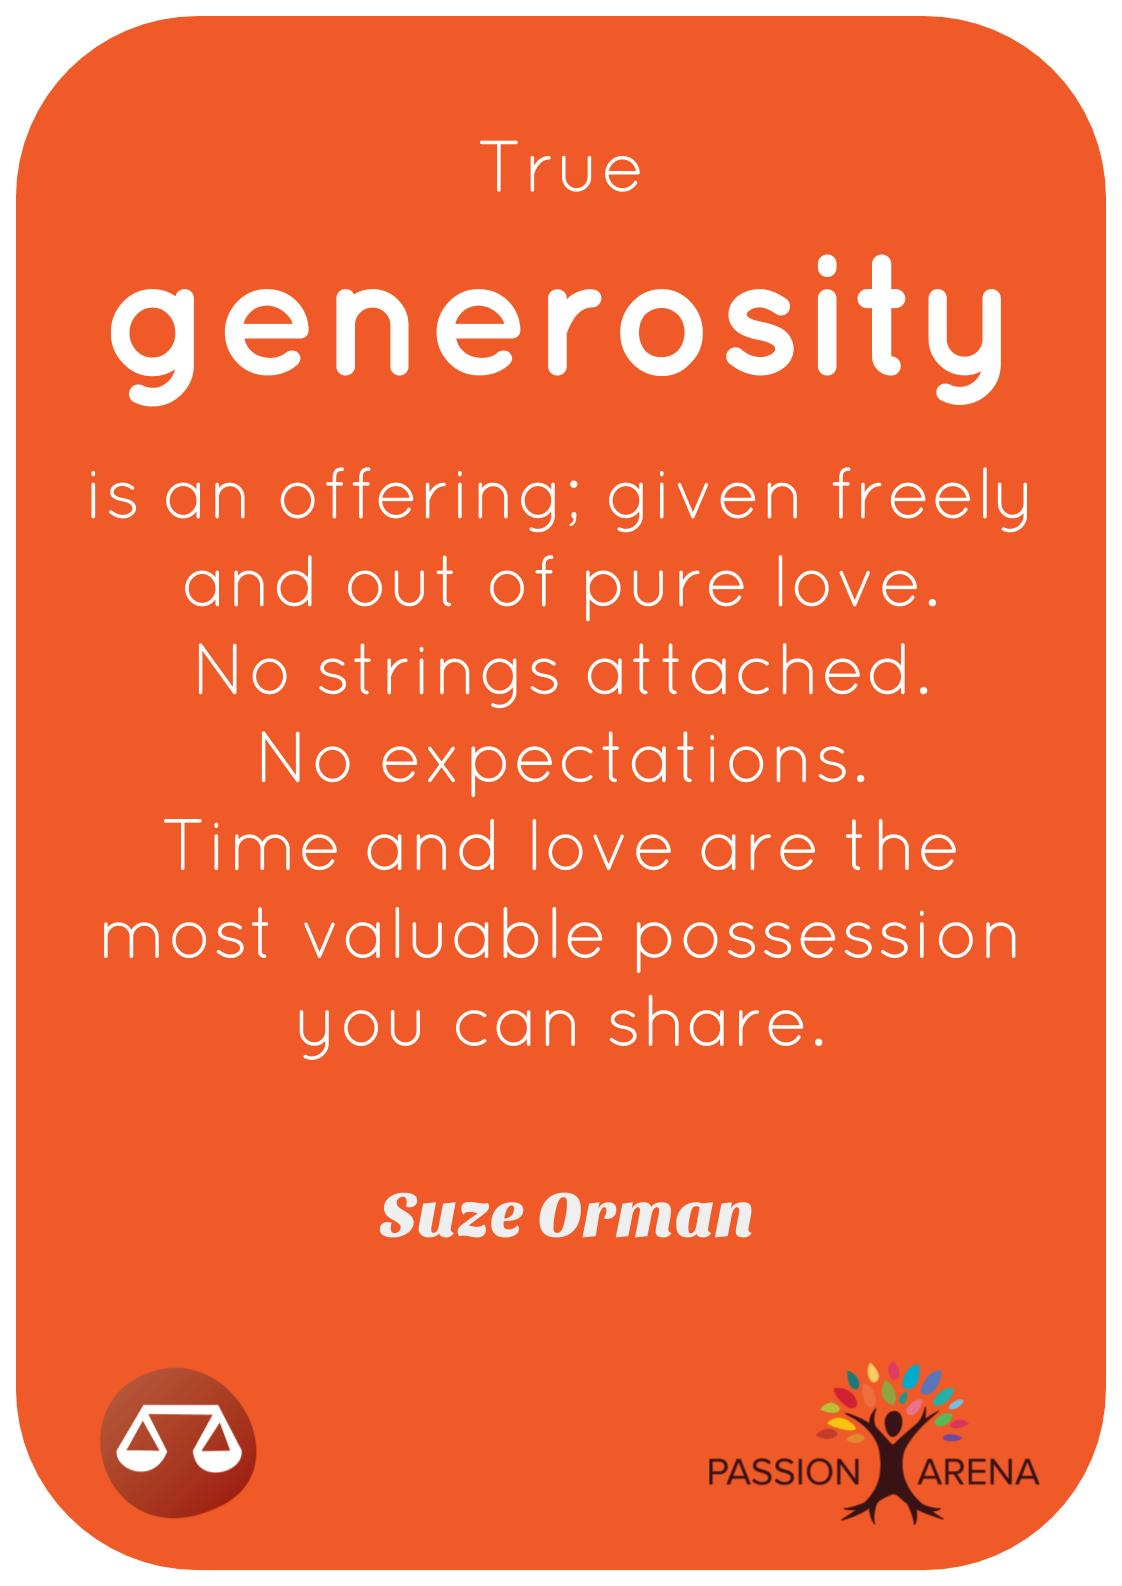 Intro-3-39. What does a generous person look like?